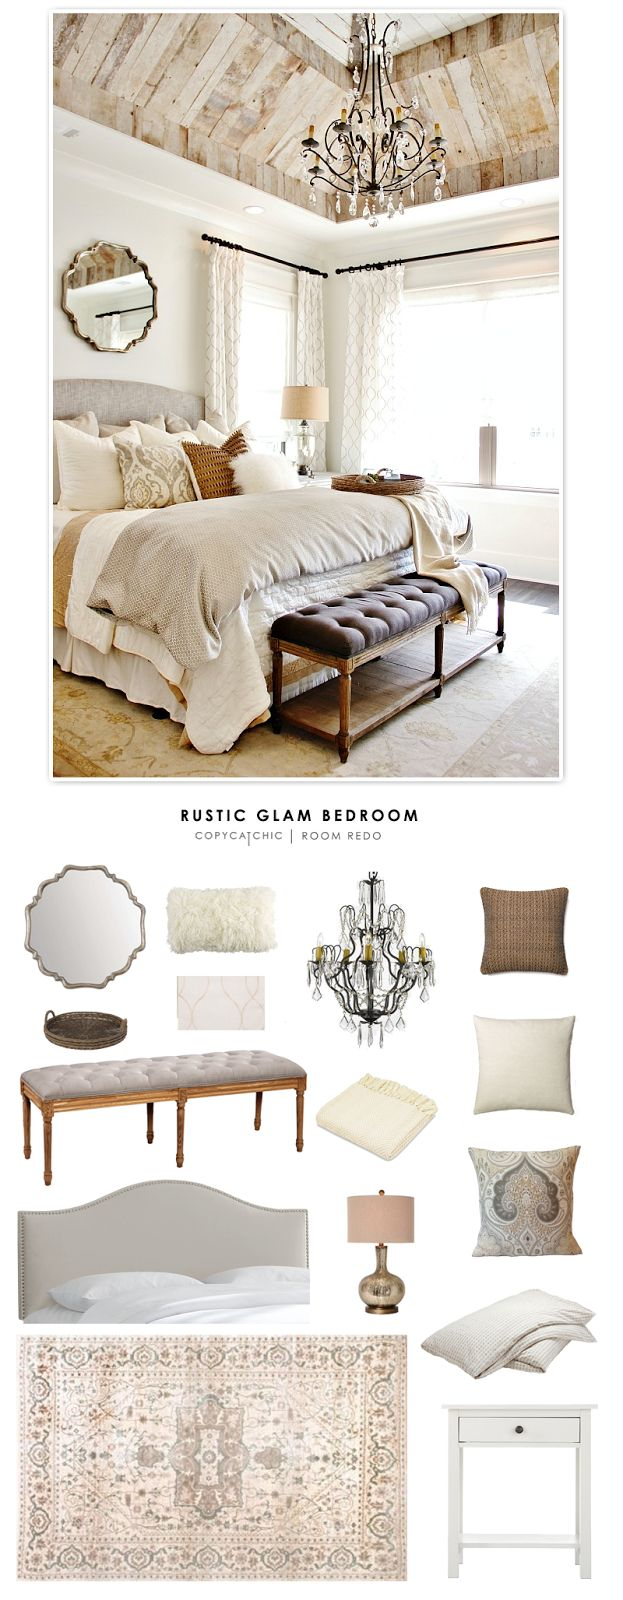 A rustic glam bedroom designed by Refresh Home and featured by Thistlewood Farms recreated for less by Copy Cat Chic. by @audreycdyer